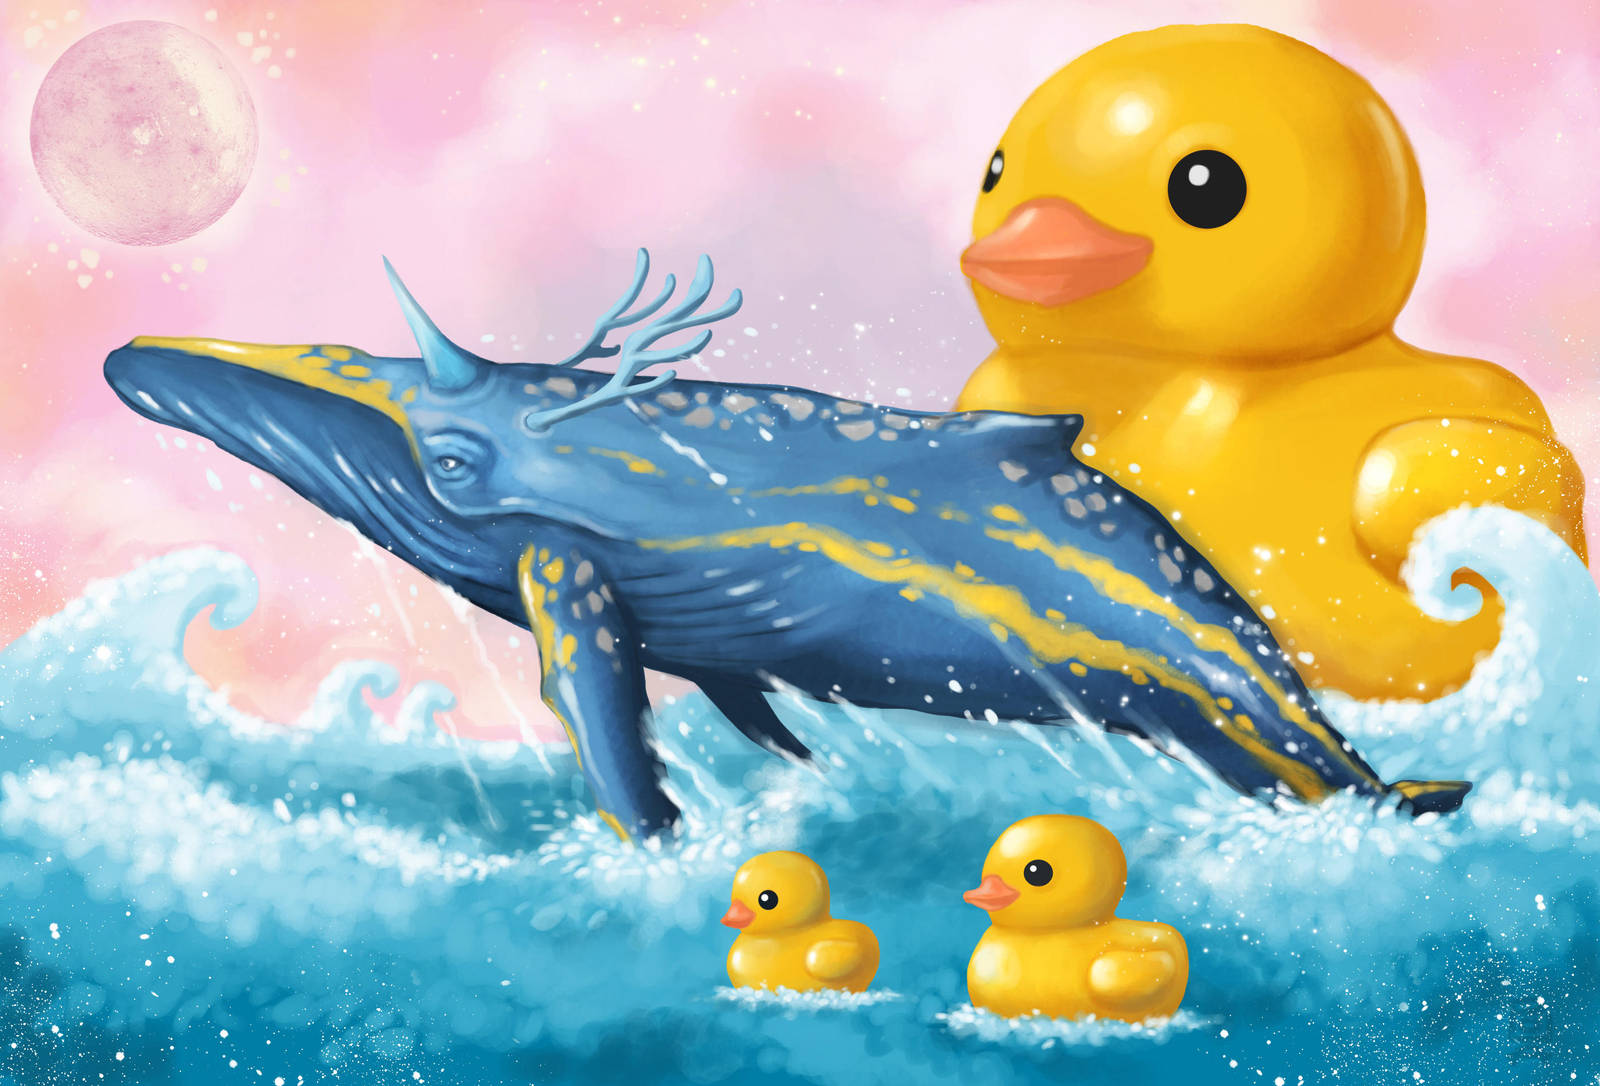 Whale and Duck by polawat